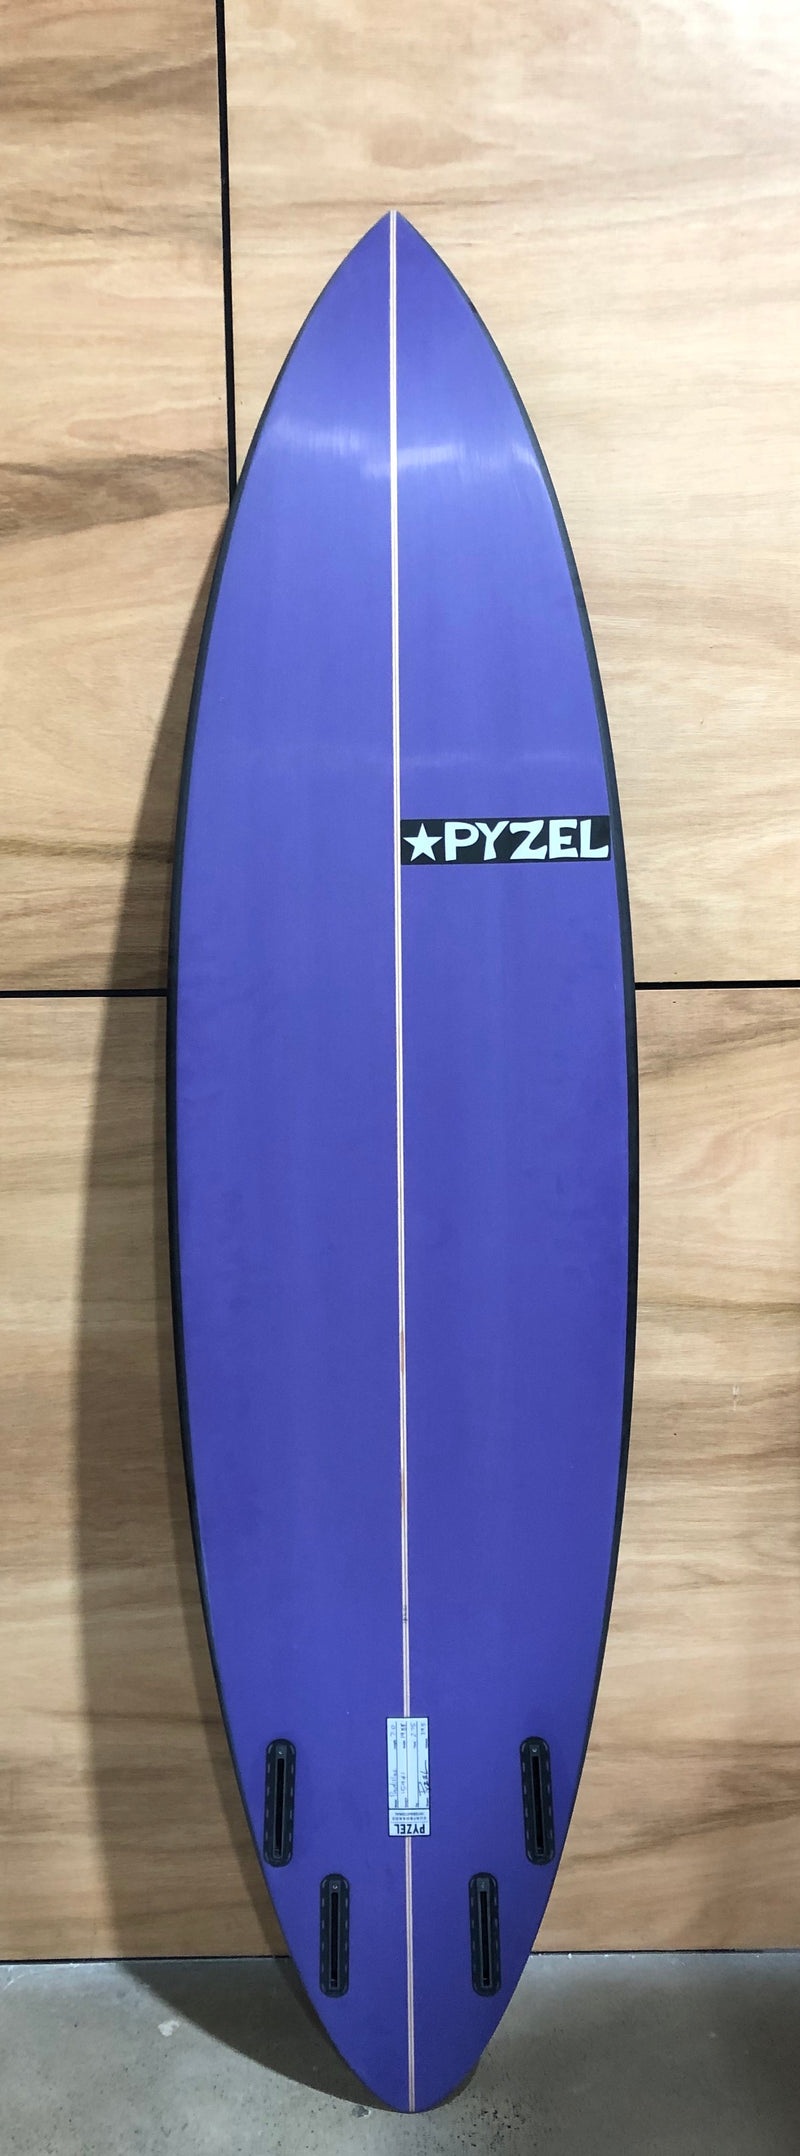 Pyzel Padillac - Board Store PyzelSurfboard